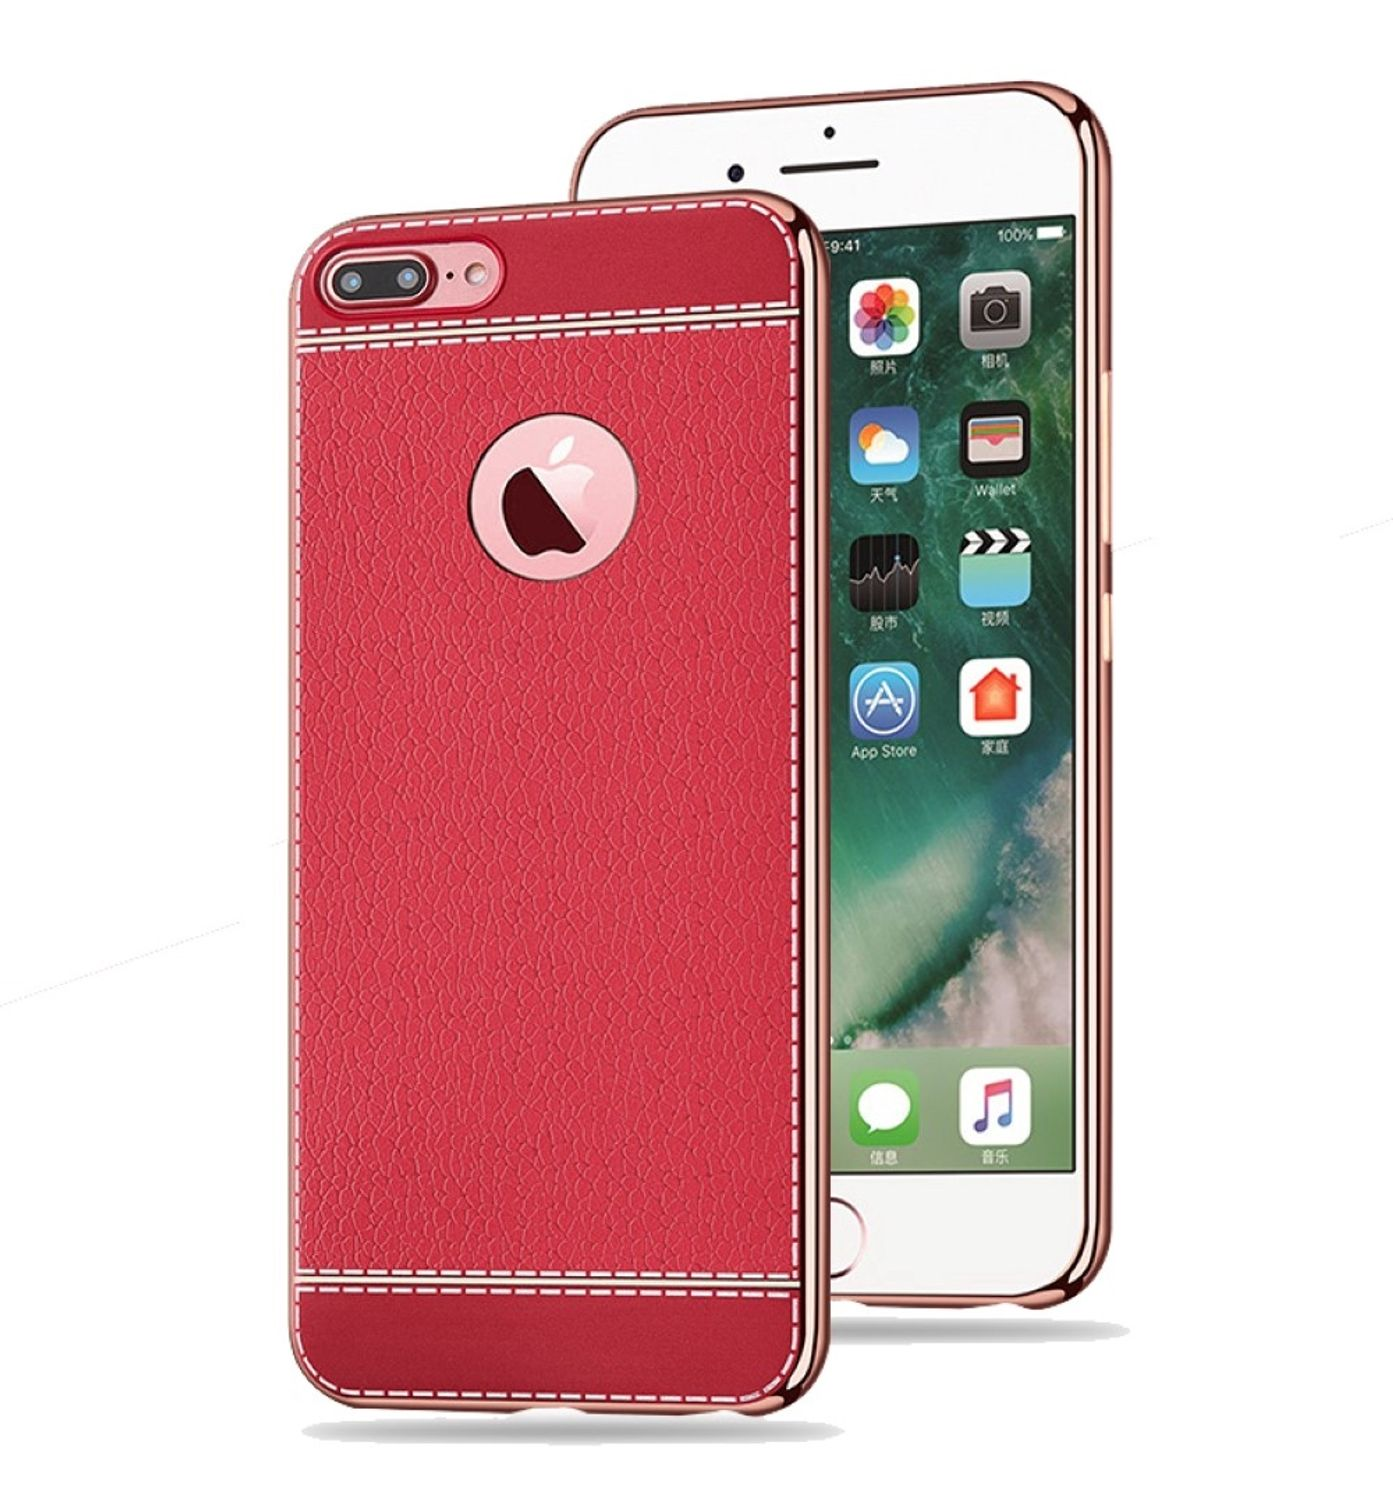 handy h lle f r apple iphone 6s plus schutz case tasche bumper kunstleder rot. Black Bedroom Furniture Sets. Home Design Ideas